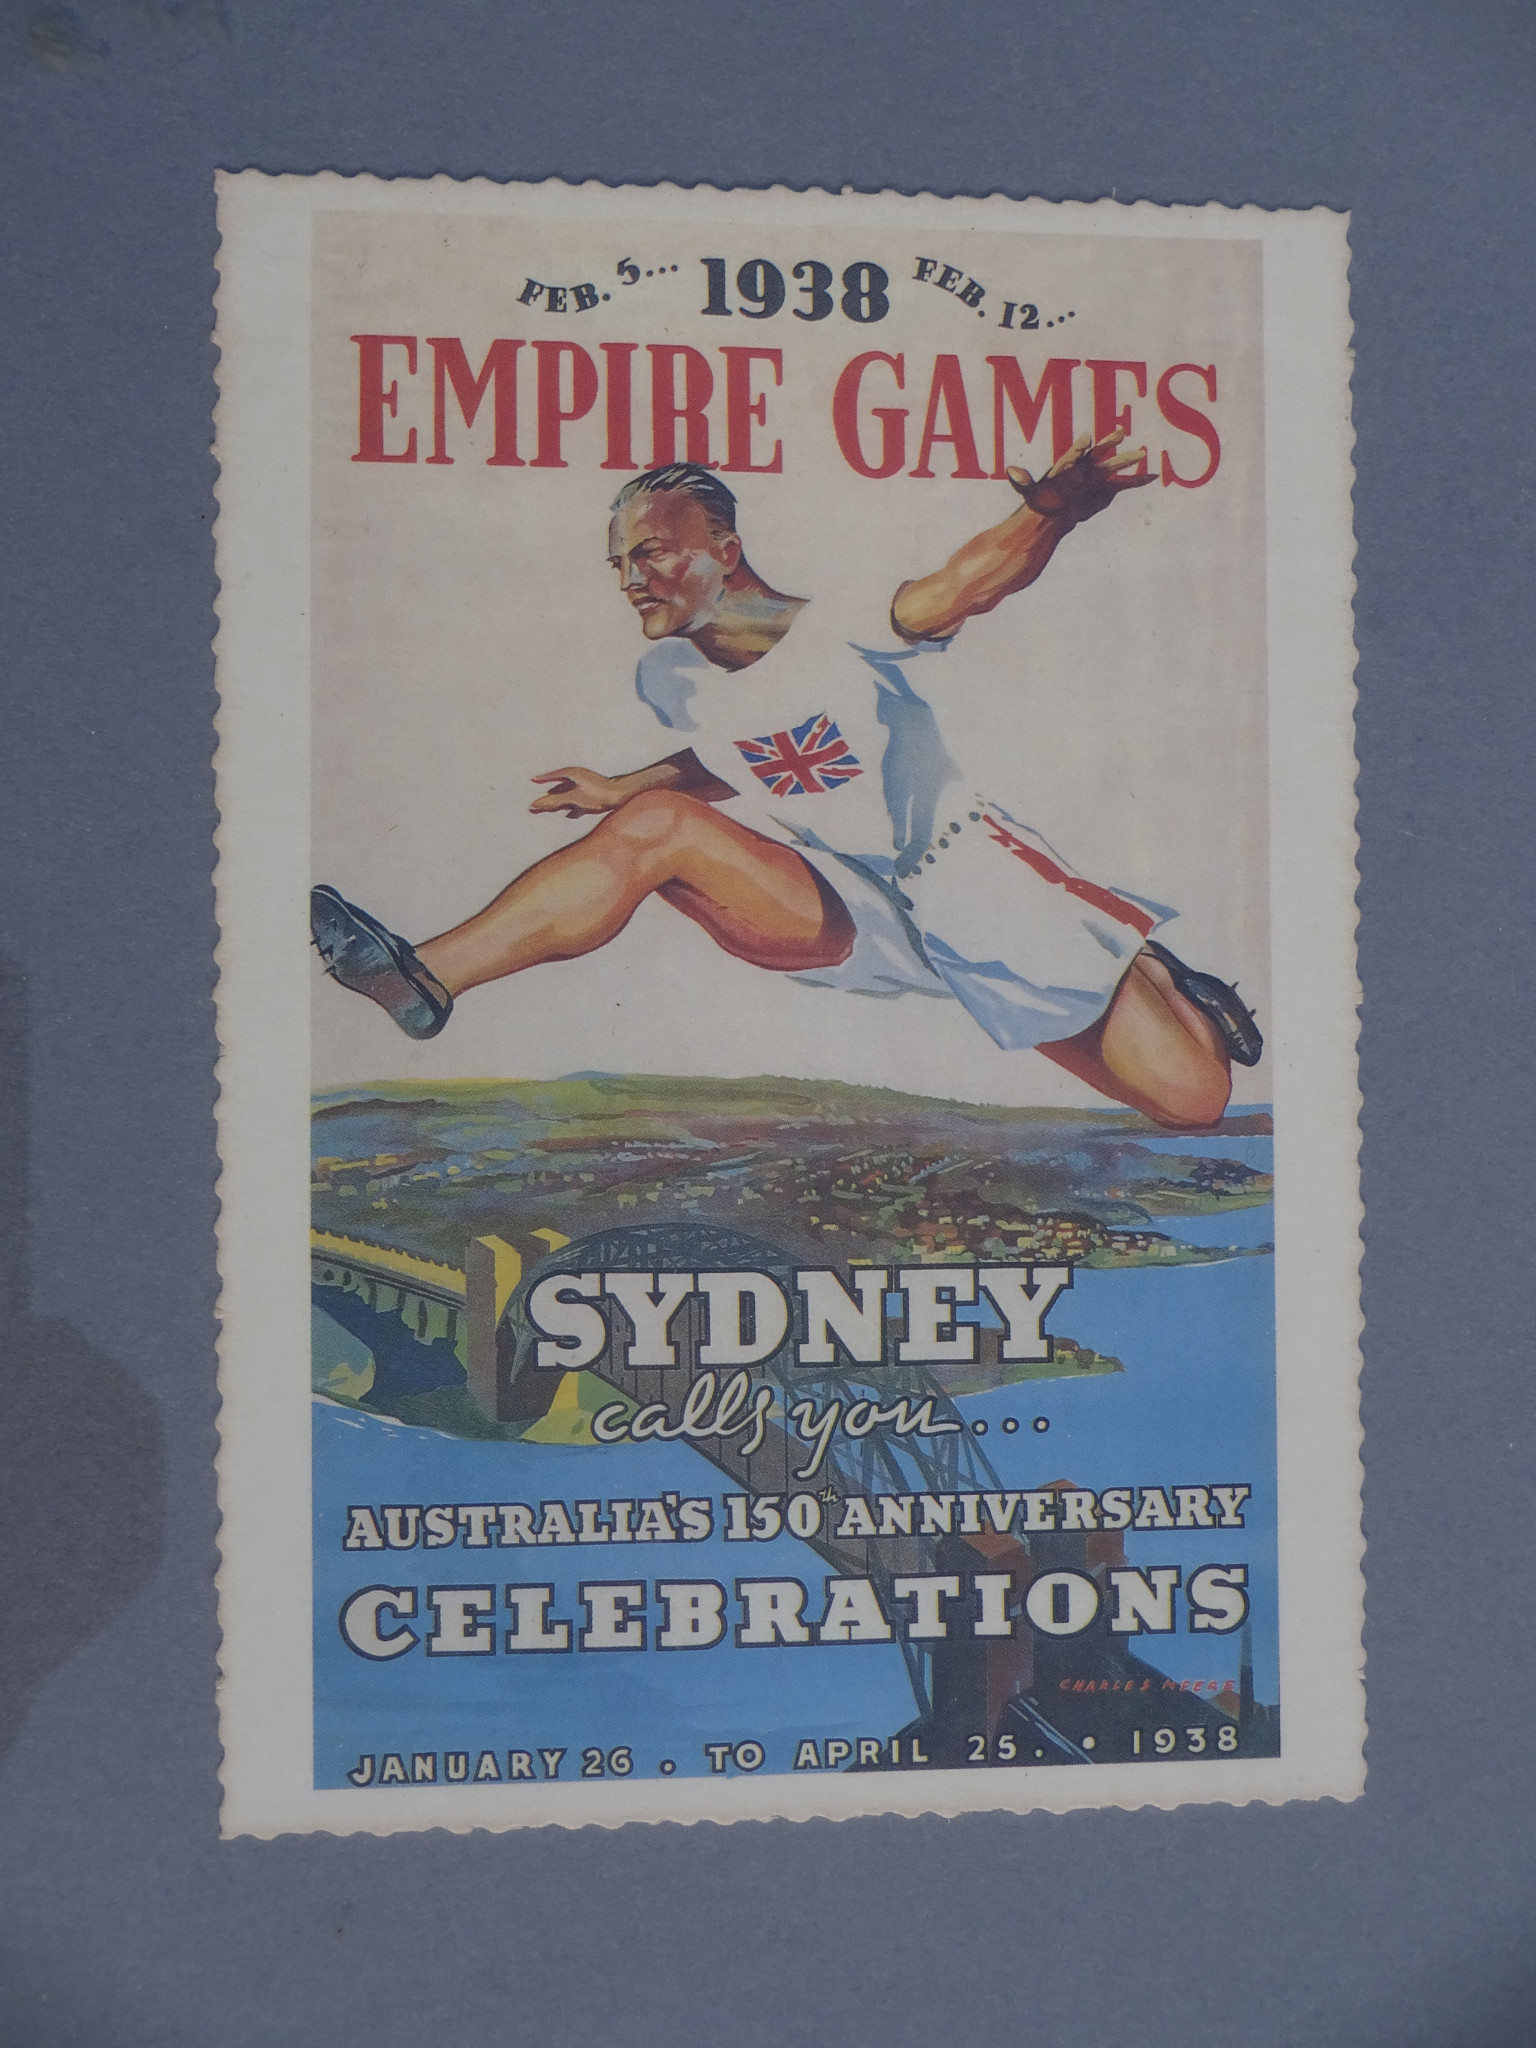 The 1938 British Empire Games in Sydney were held as an important part of the 150th anniversary of the first settlers arriving in Australia ©Philip Barker